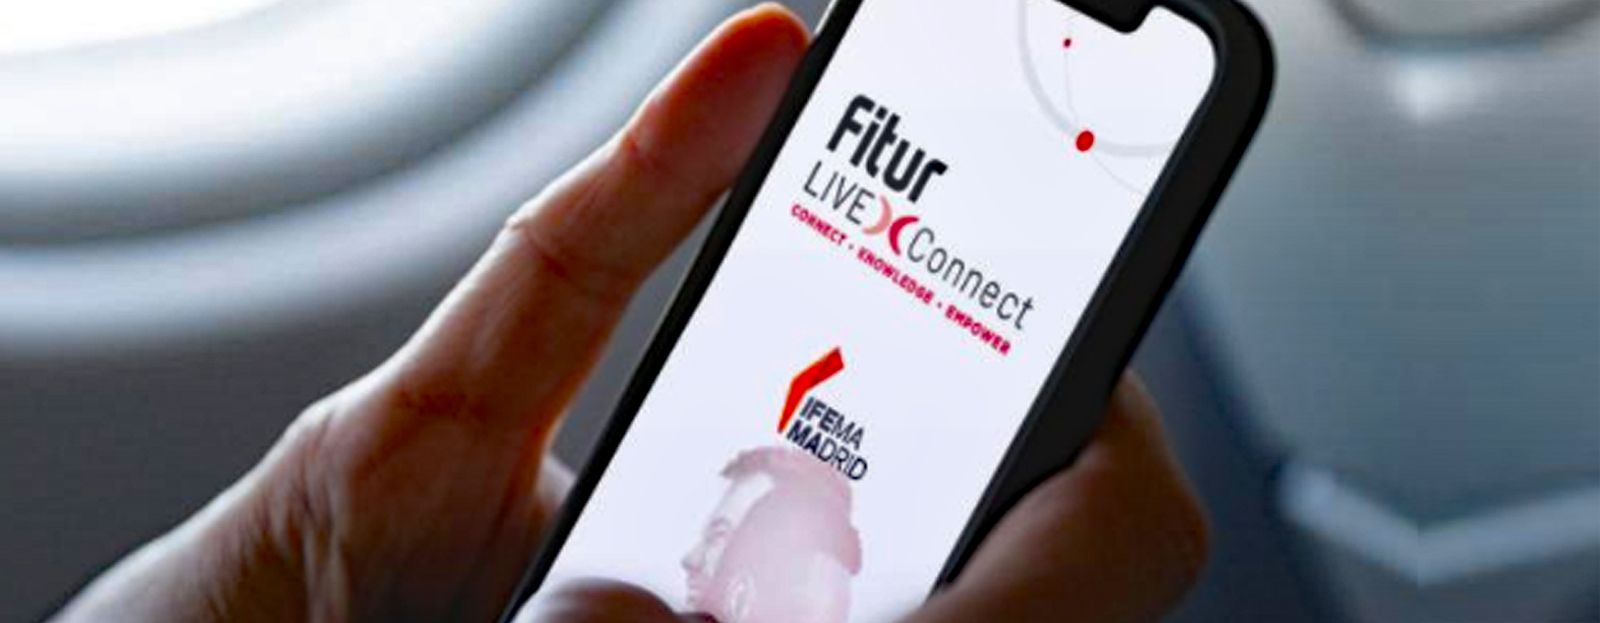 Fitur Live andConnect_cabecera